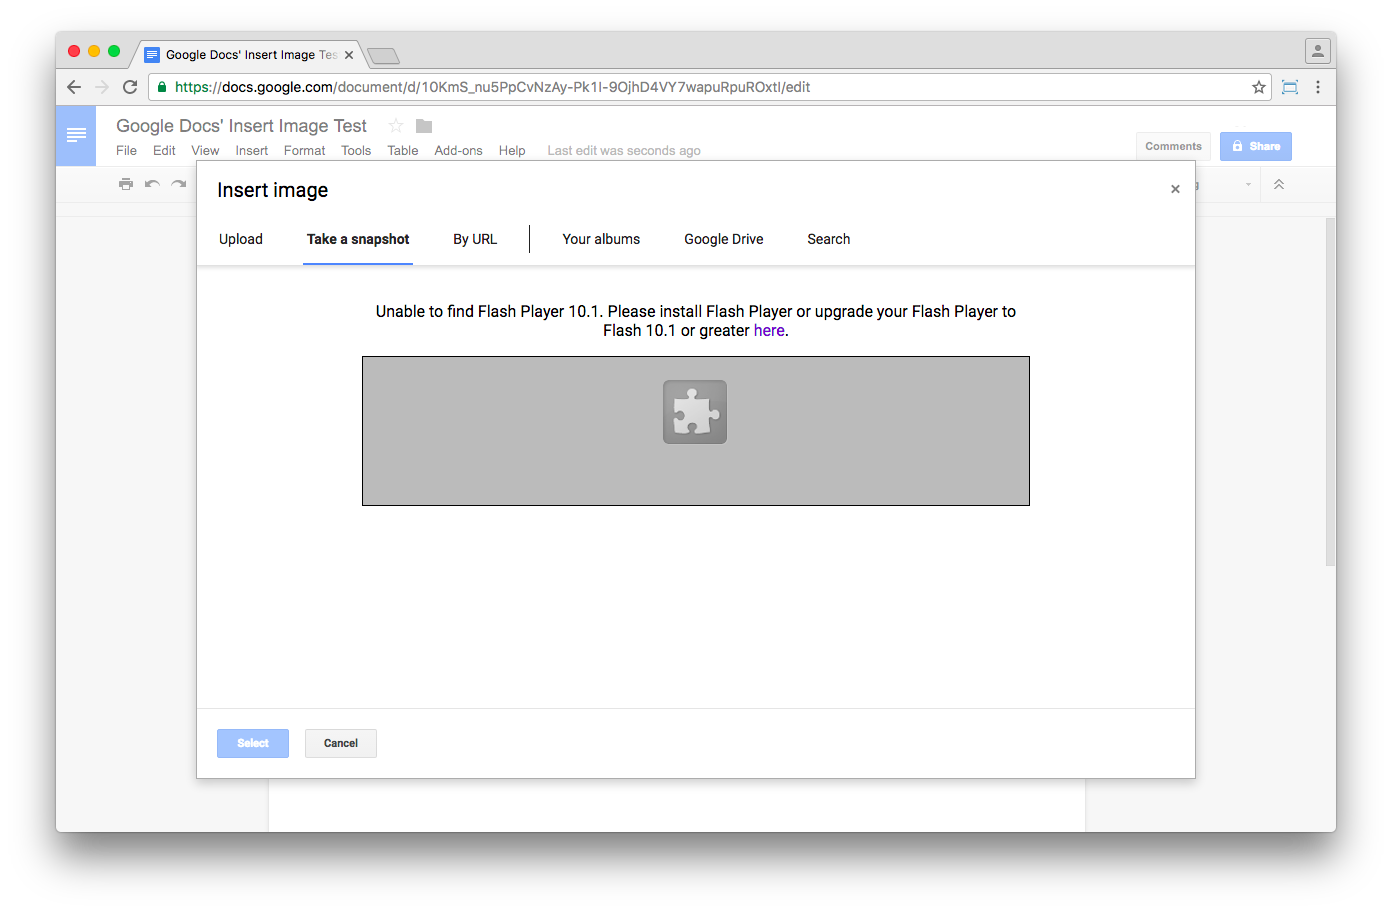 Google Docs' webcam snapshot feature does not work without Flash Player